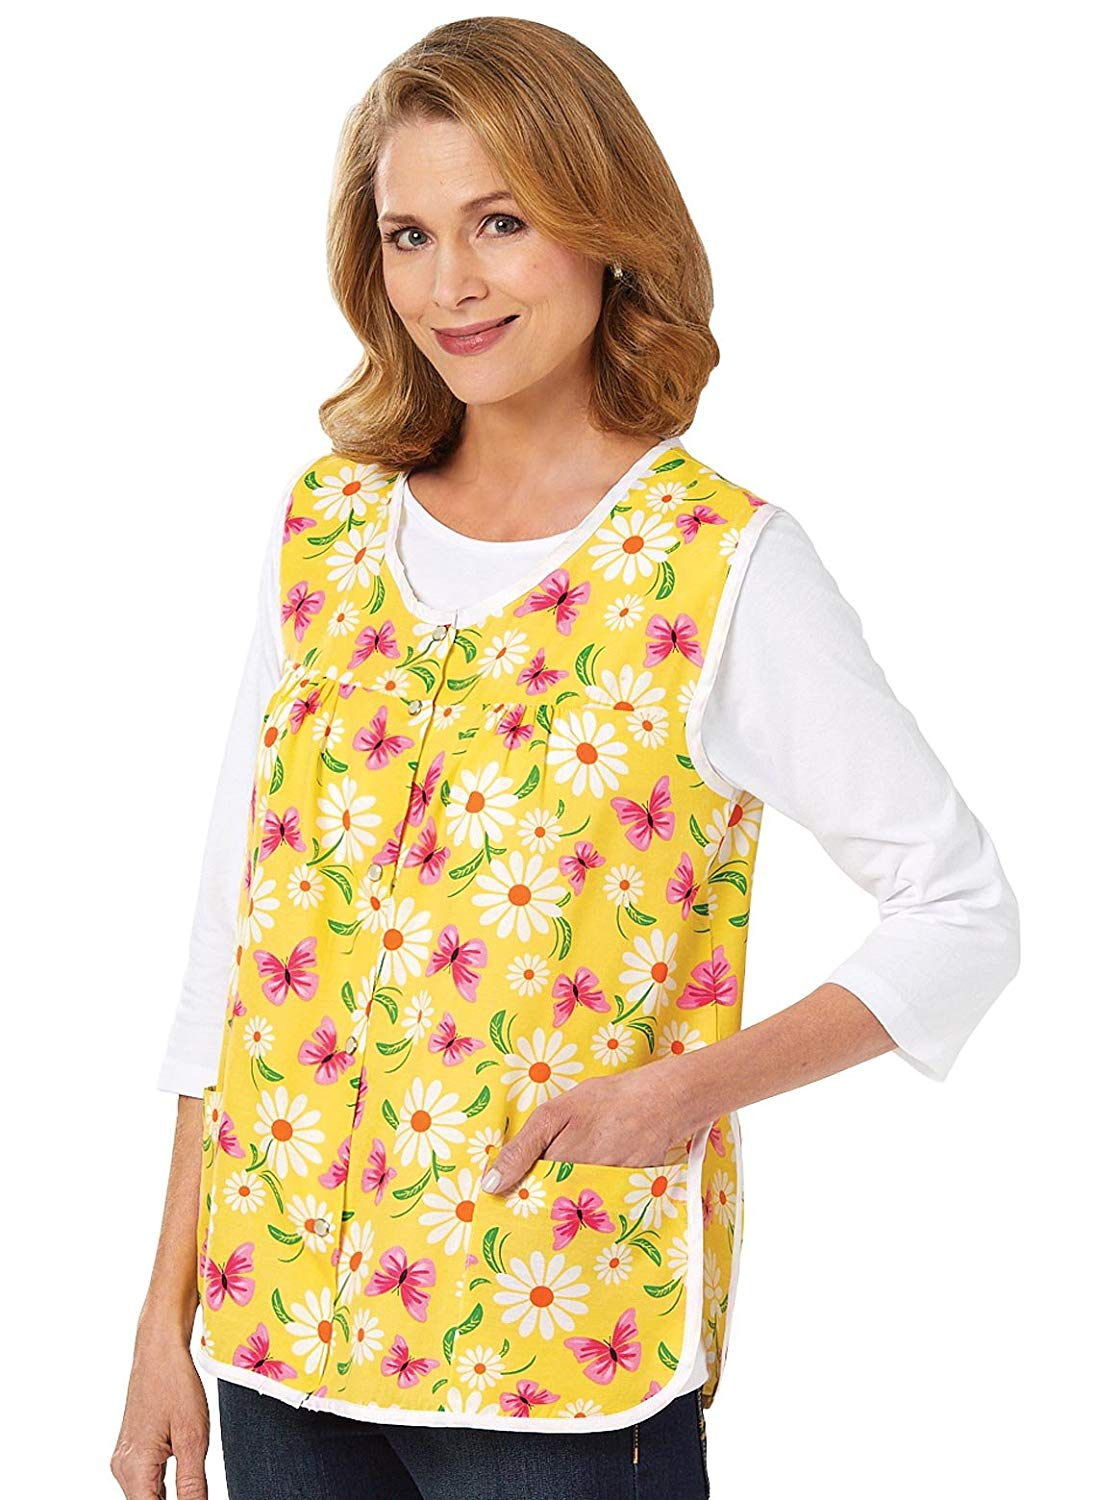 Carol Wright Gifts Cobbler Apron, Color Daisy, Size Extra Large (1X), Daisy, Size Extra Large (1X)